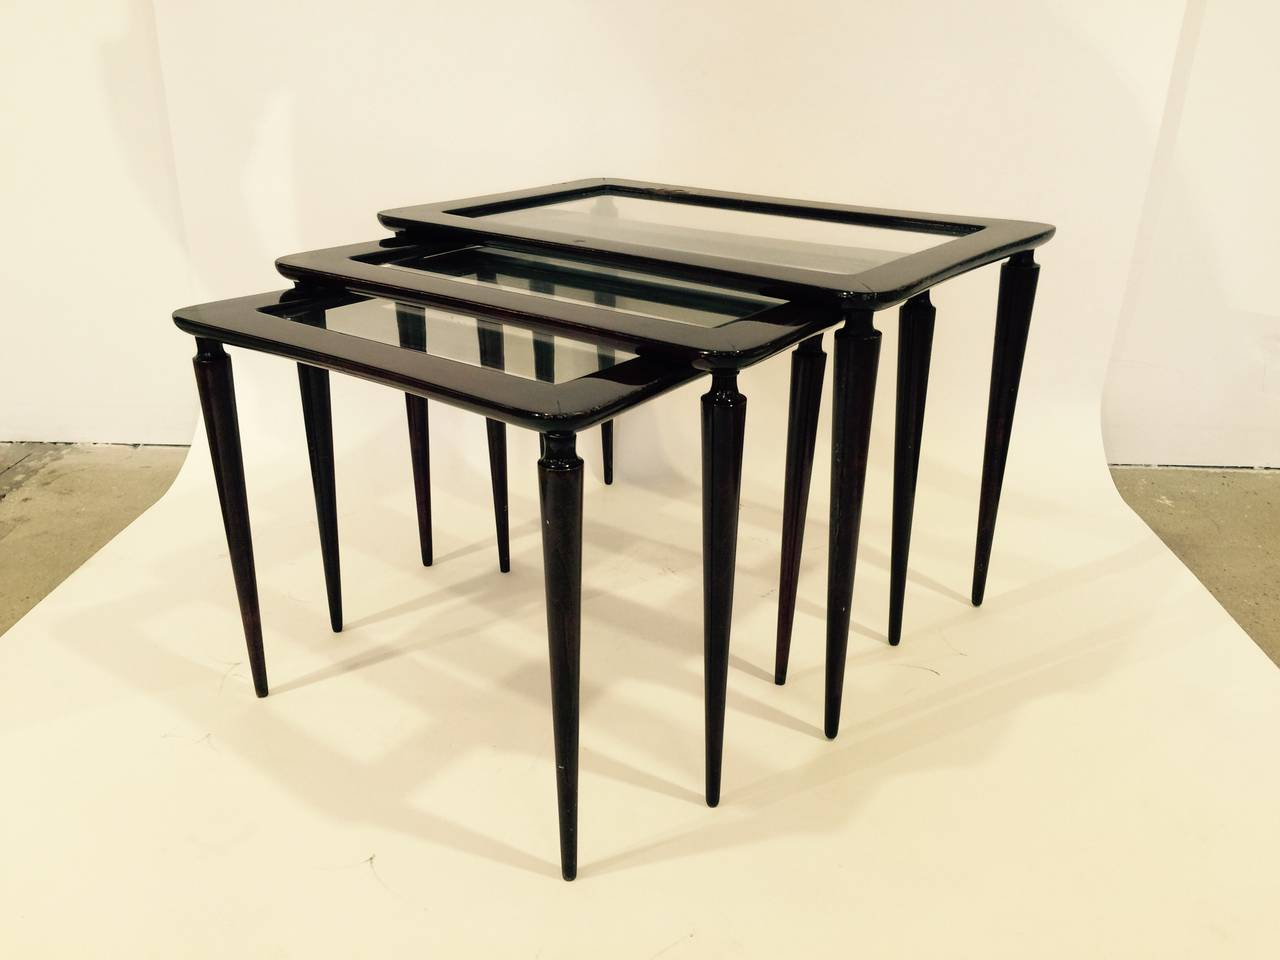 Wood Stacking Tables ~ Italian lacquered wood and glass nesting tables for sale